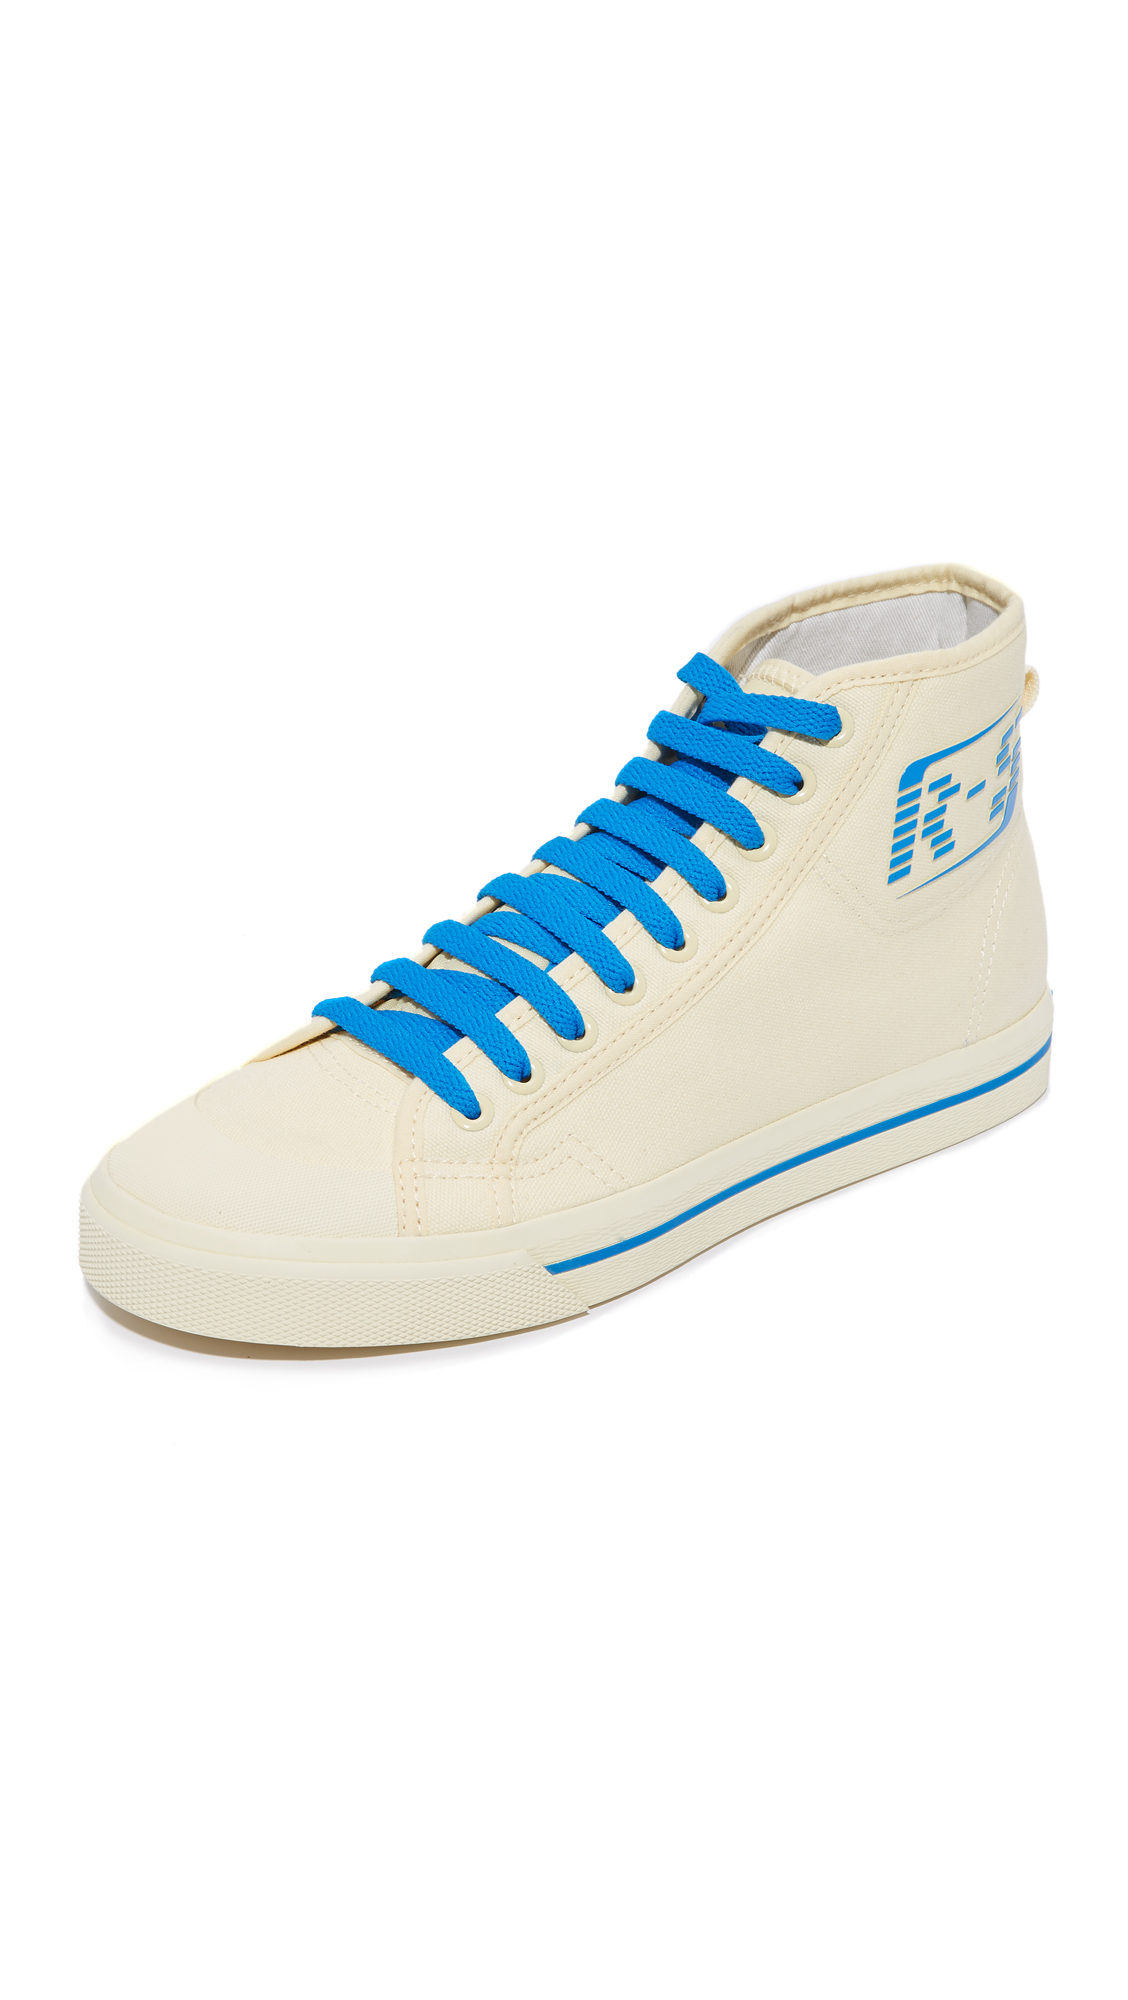 Adidas Adidas X Raf Simons Matrix Spirit High Top Sneakers - Mist Sun/Bright Blue/Mist Sun at Shopbop